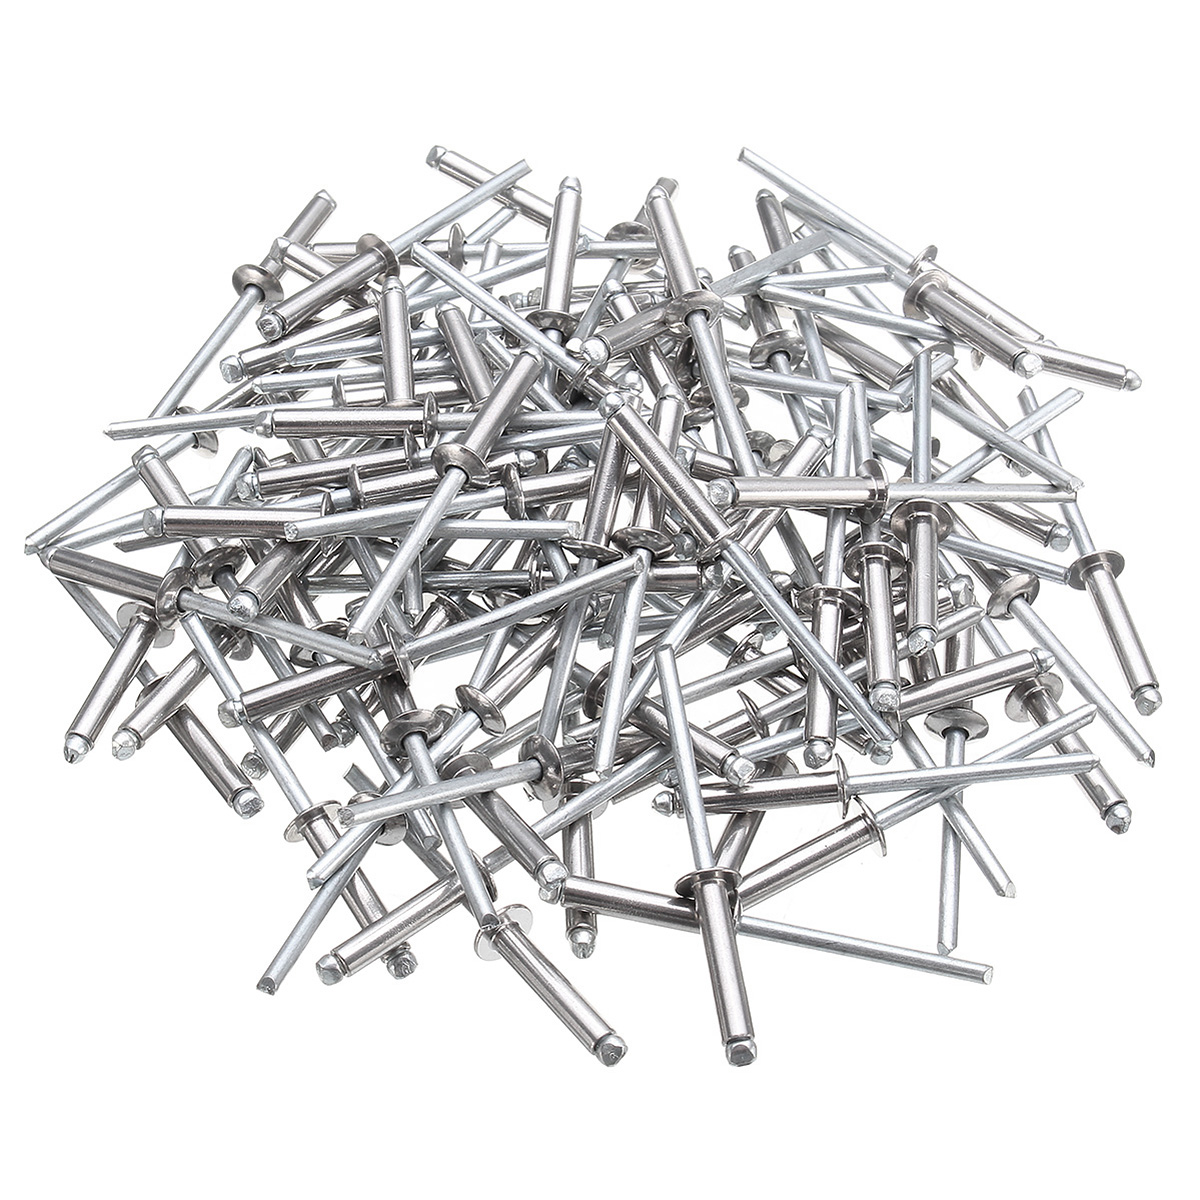 100Pcs M4 304 Stainless Steel Open End Blind Rivets Dome Head with Break Pull Mandrel Tools